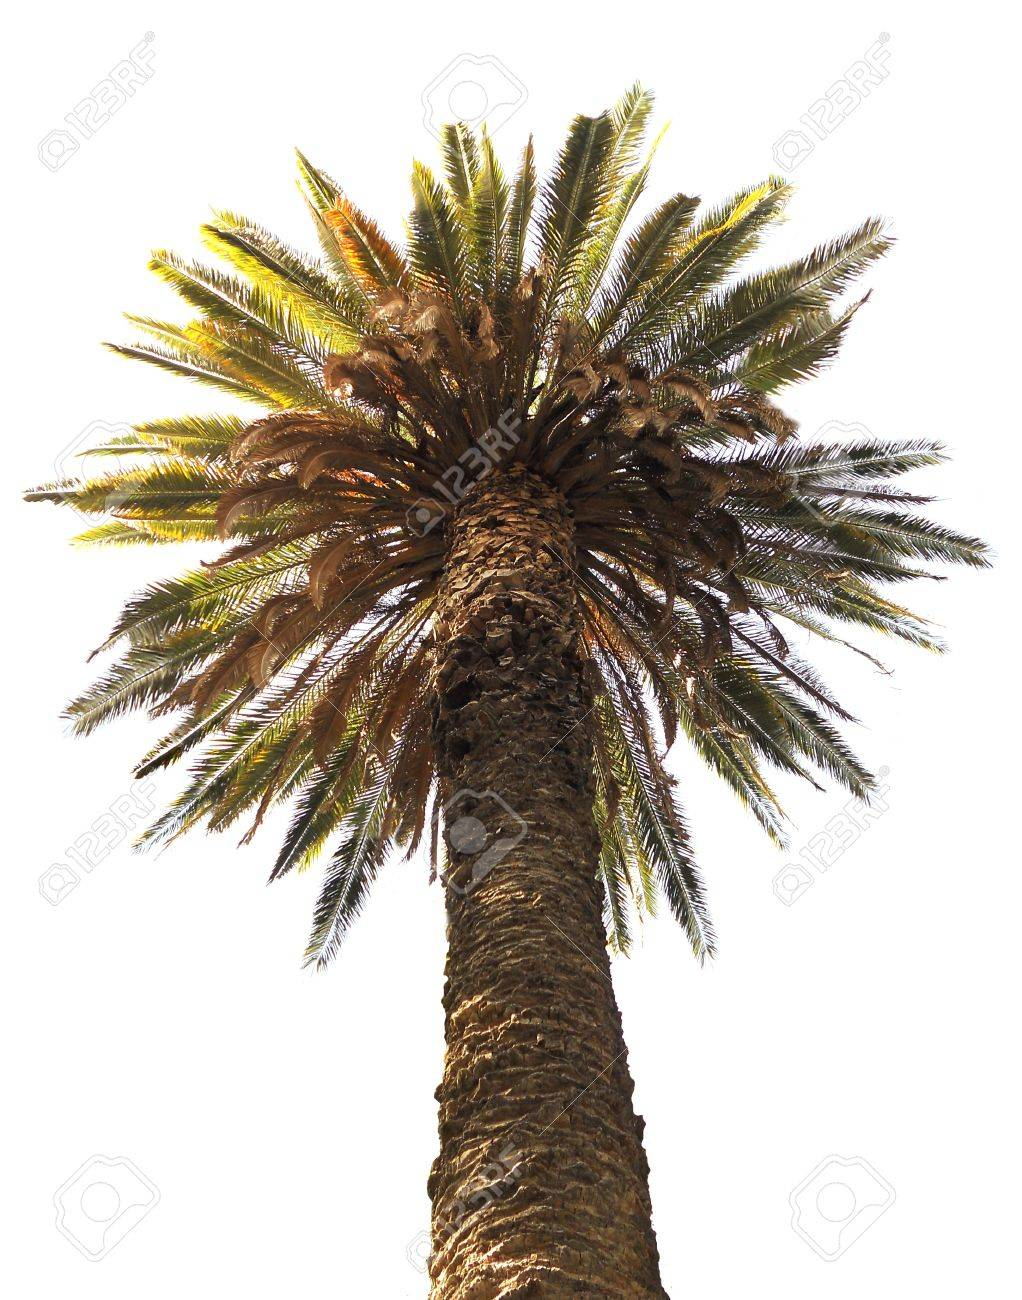 palm tree, top of a palm tree against white background,  cut-out, clipped Stock Photo - 14809616